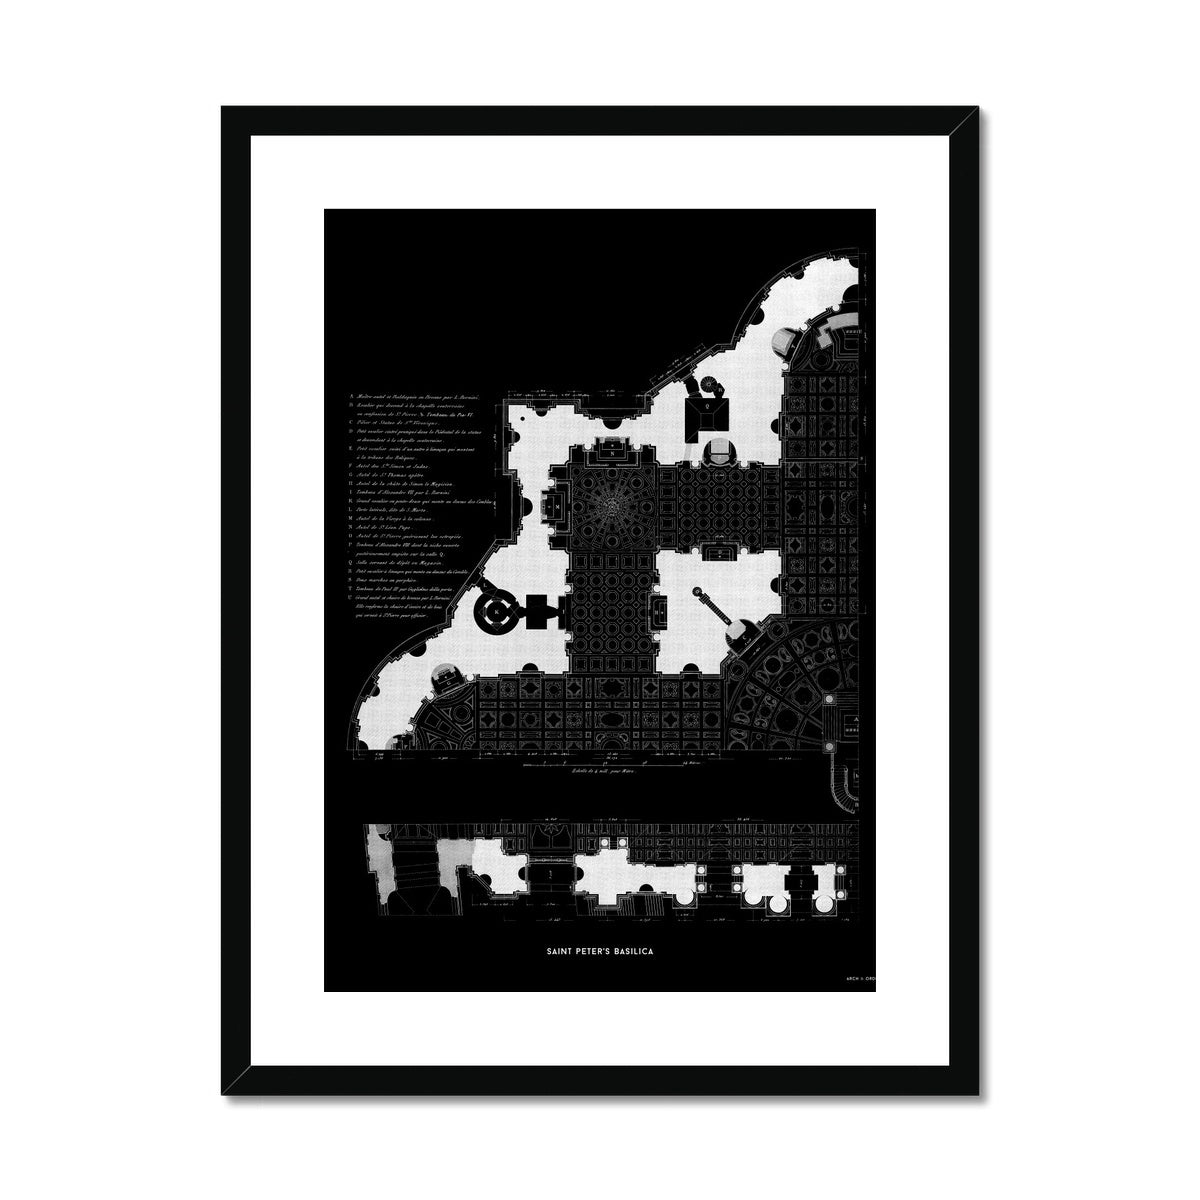 Saint Peter's Basilica - Floor Plan Detail - Black -  Framed & Mounted Print